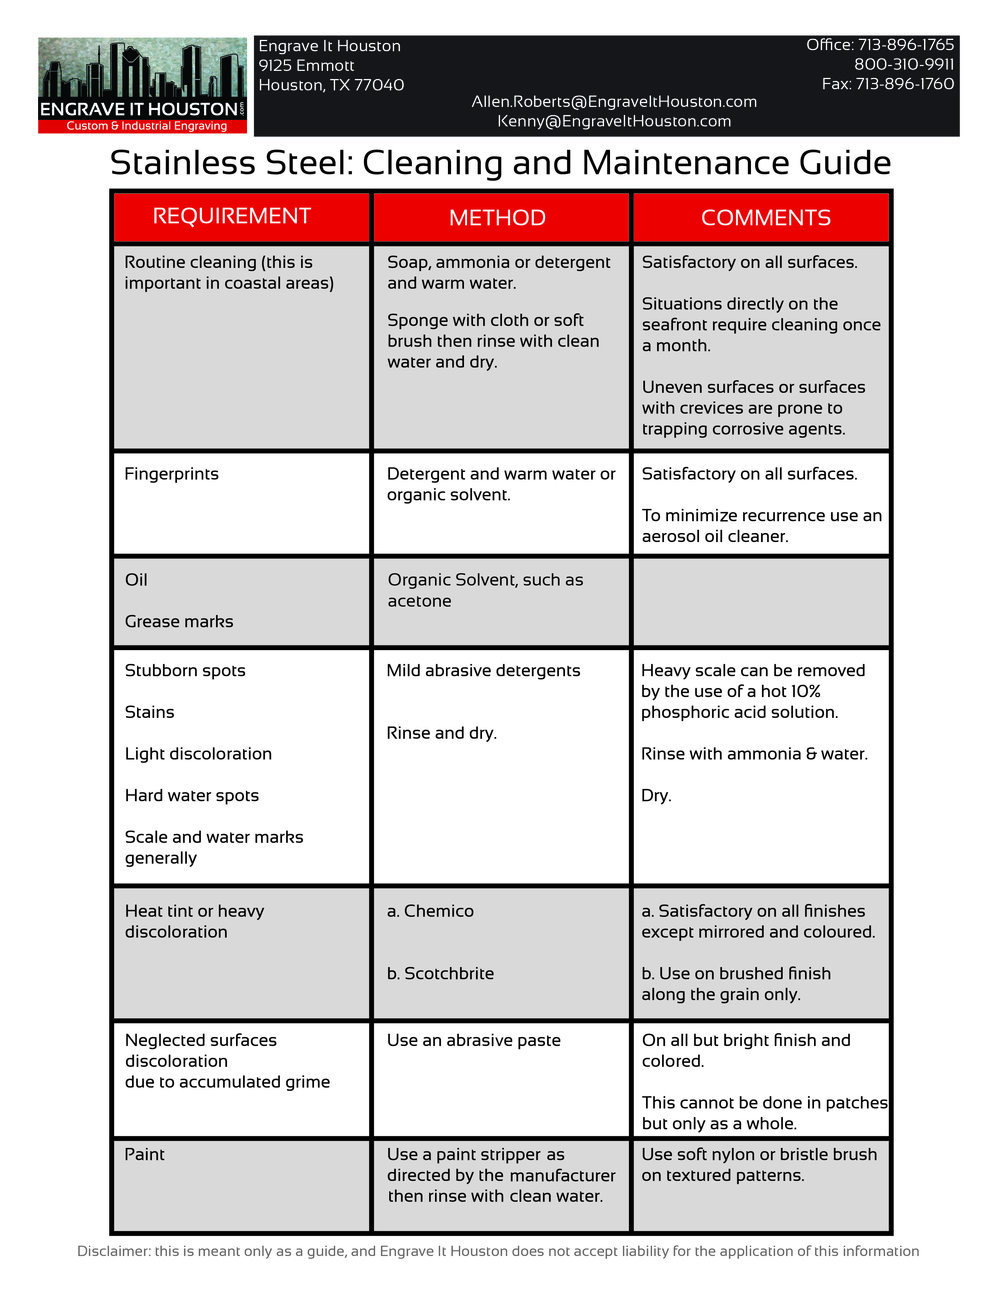 Stainless-Steel-cleaning-maintenance-guide.jpg